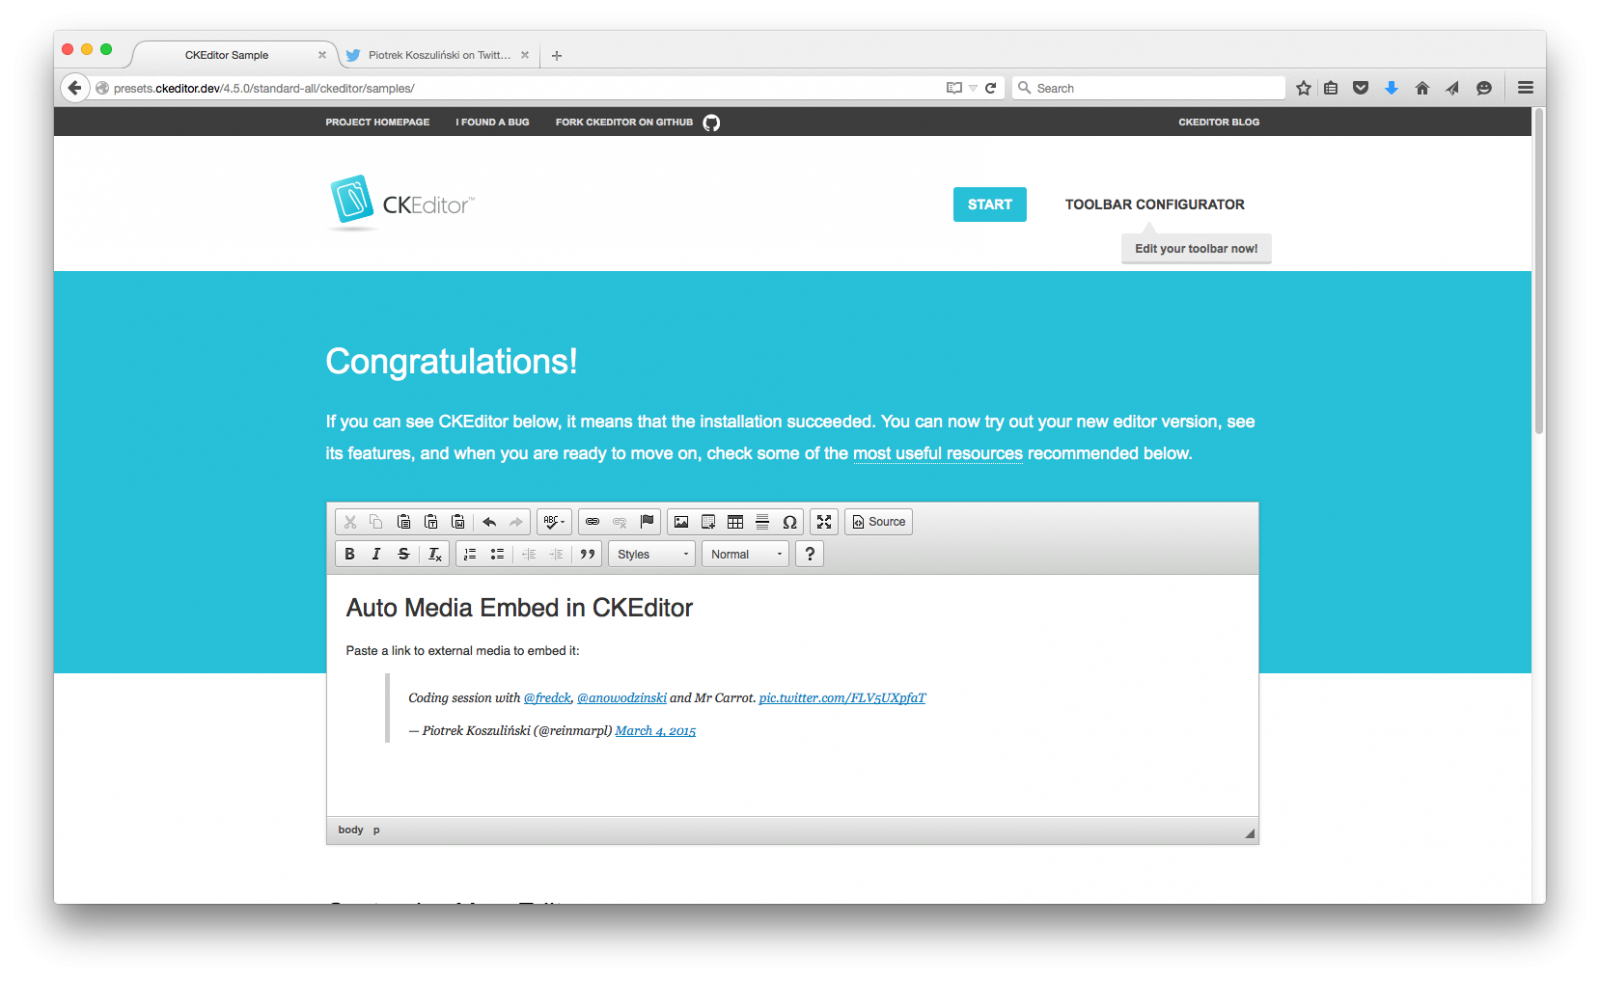 CKEditor 4.5 with Auto Media Embed plugin